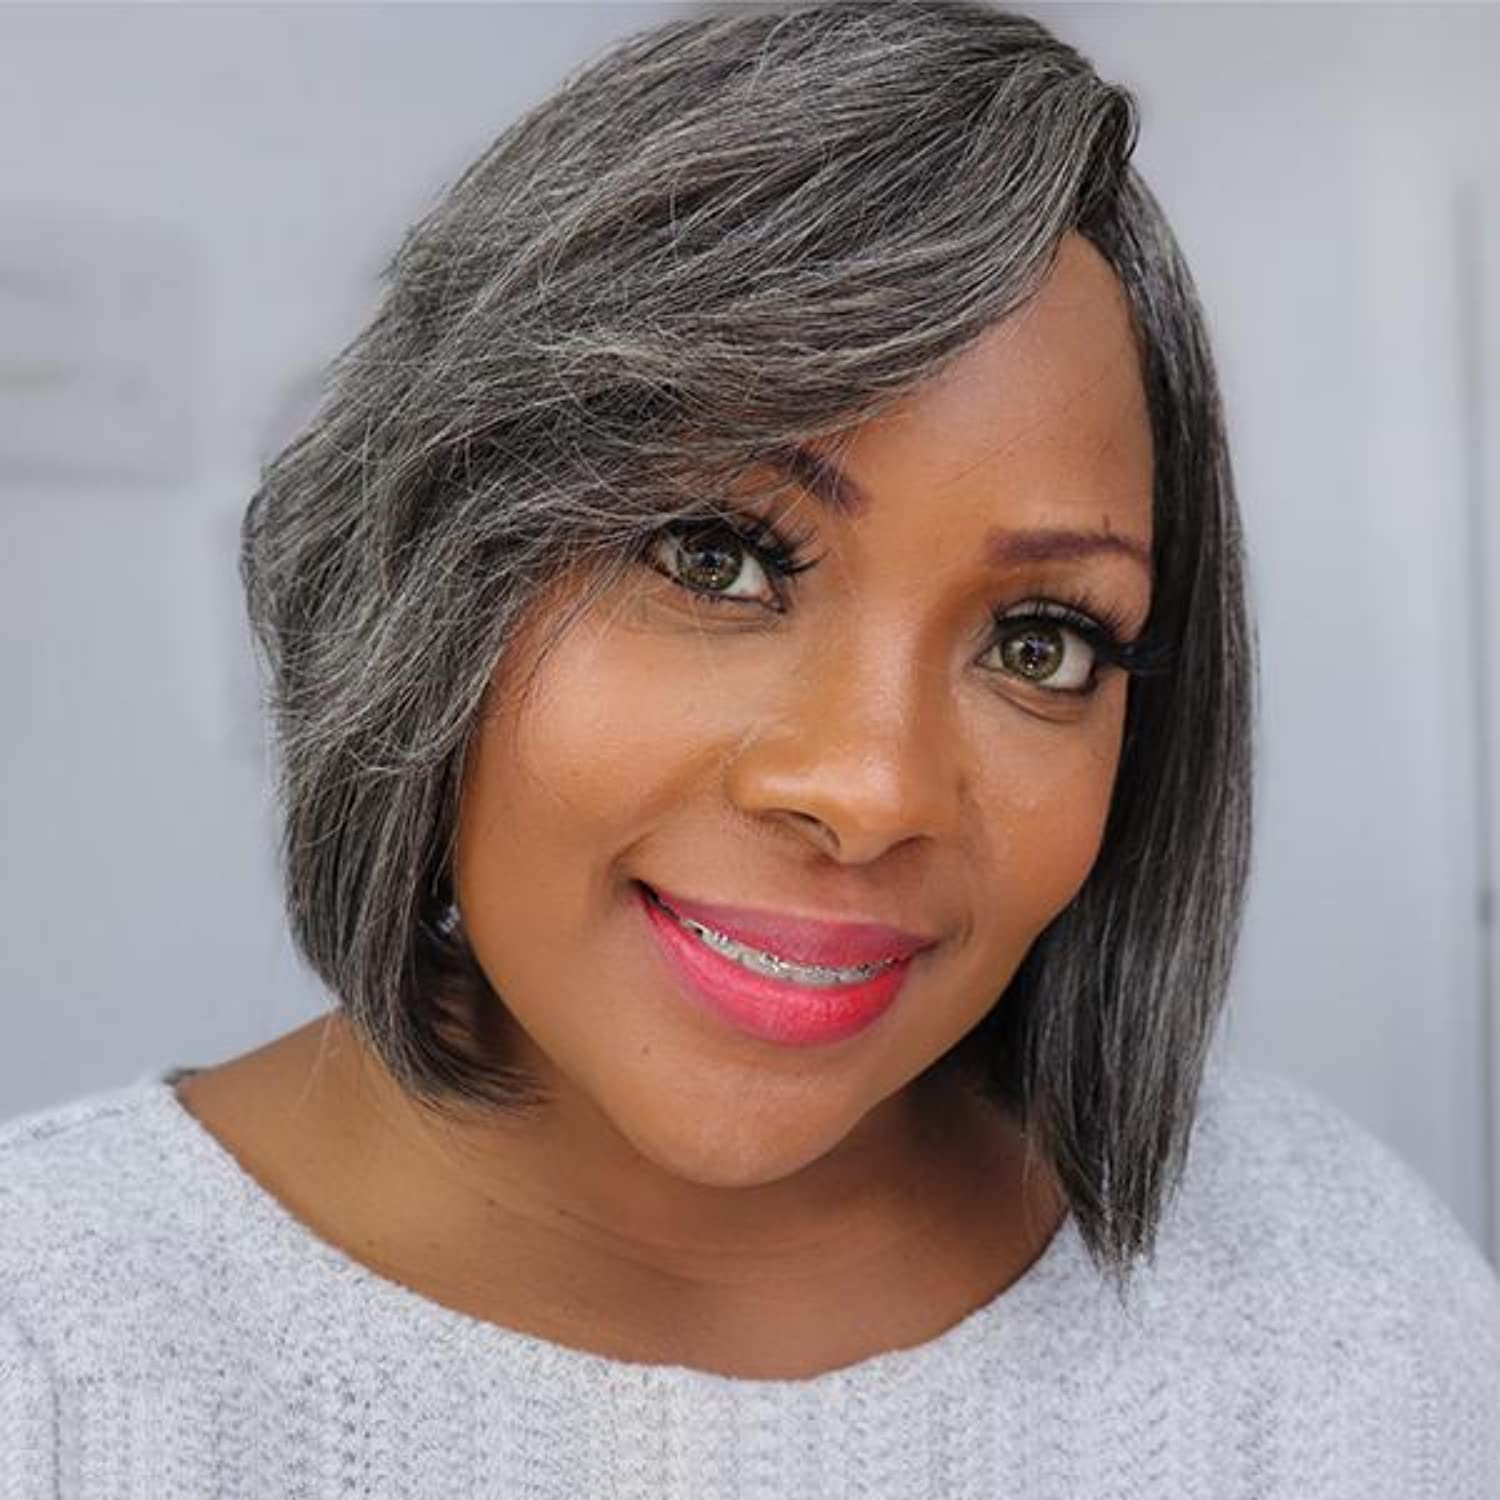 LuvMe Hair Factory outlet Black with Fashion Grey Bob 8 Human Bangs Wigs Wig